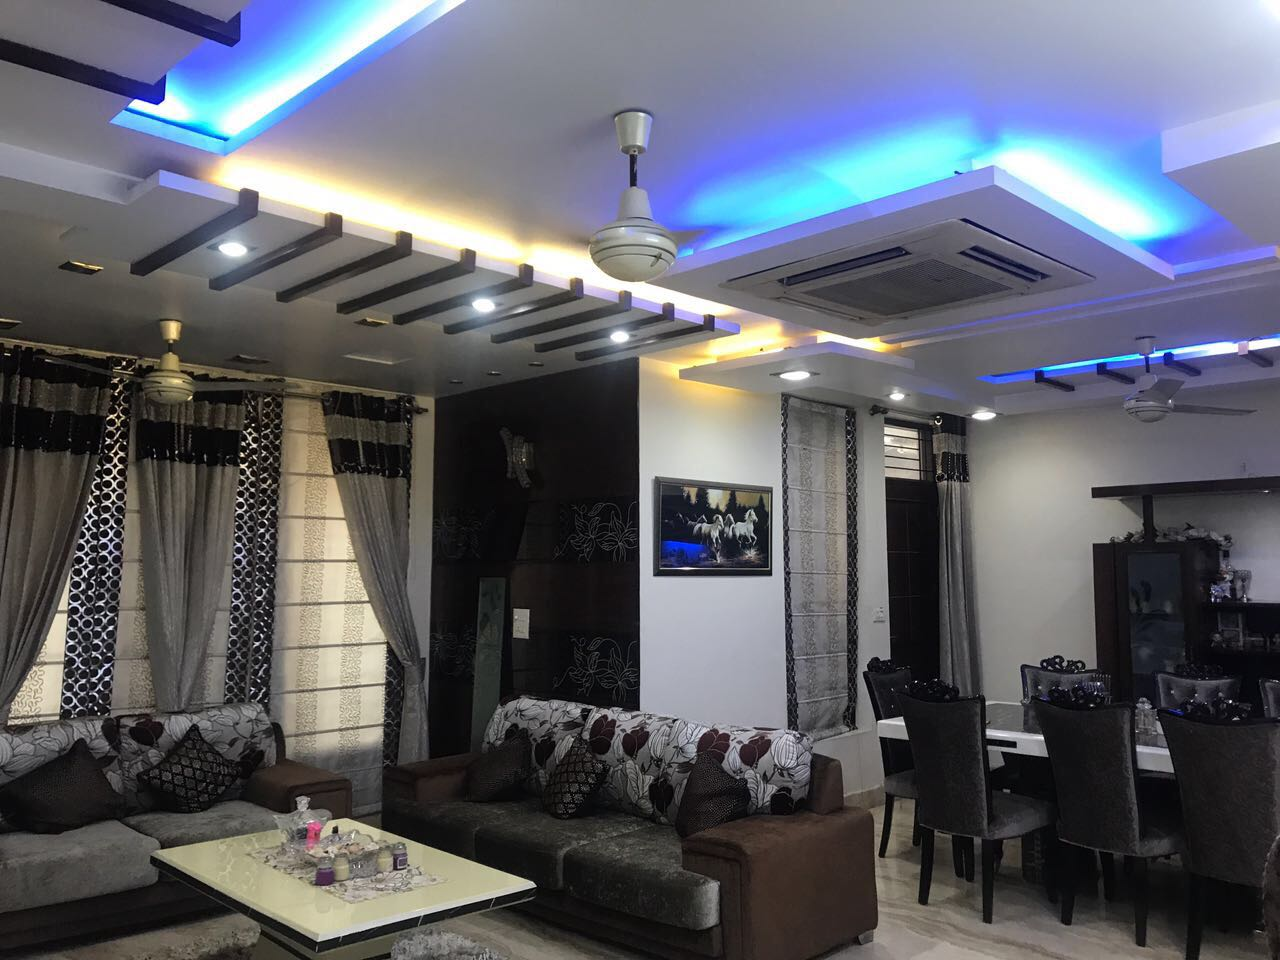 Living Room WithBlue Lighting by Shriya Sabharwal Living-room Contemporary | Interior Design Photos & Ideas